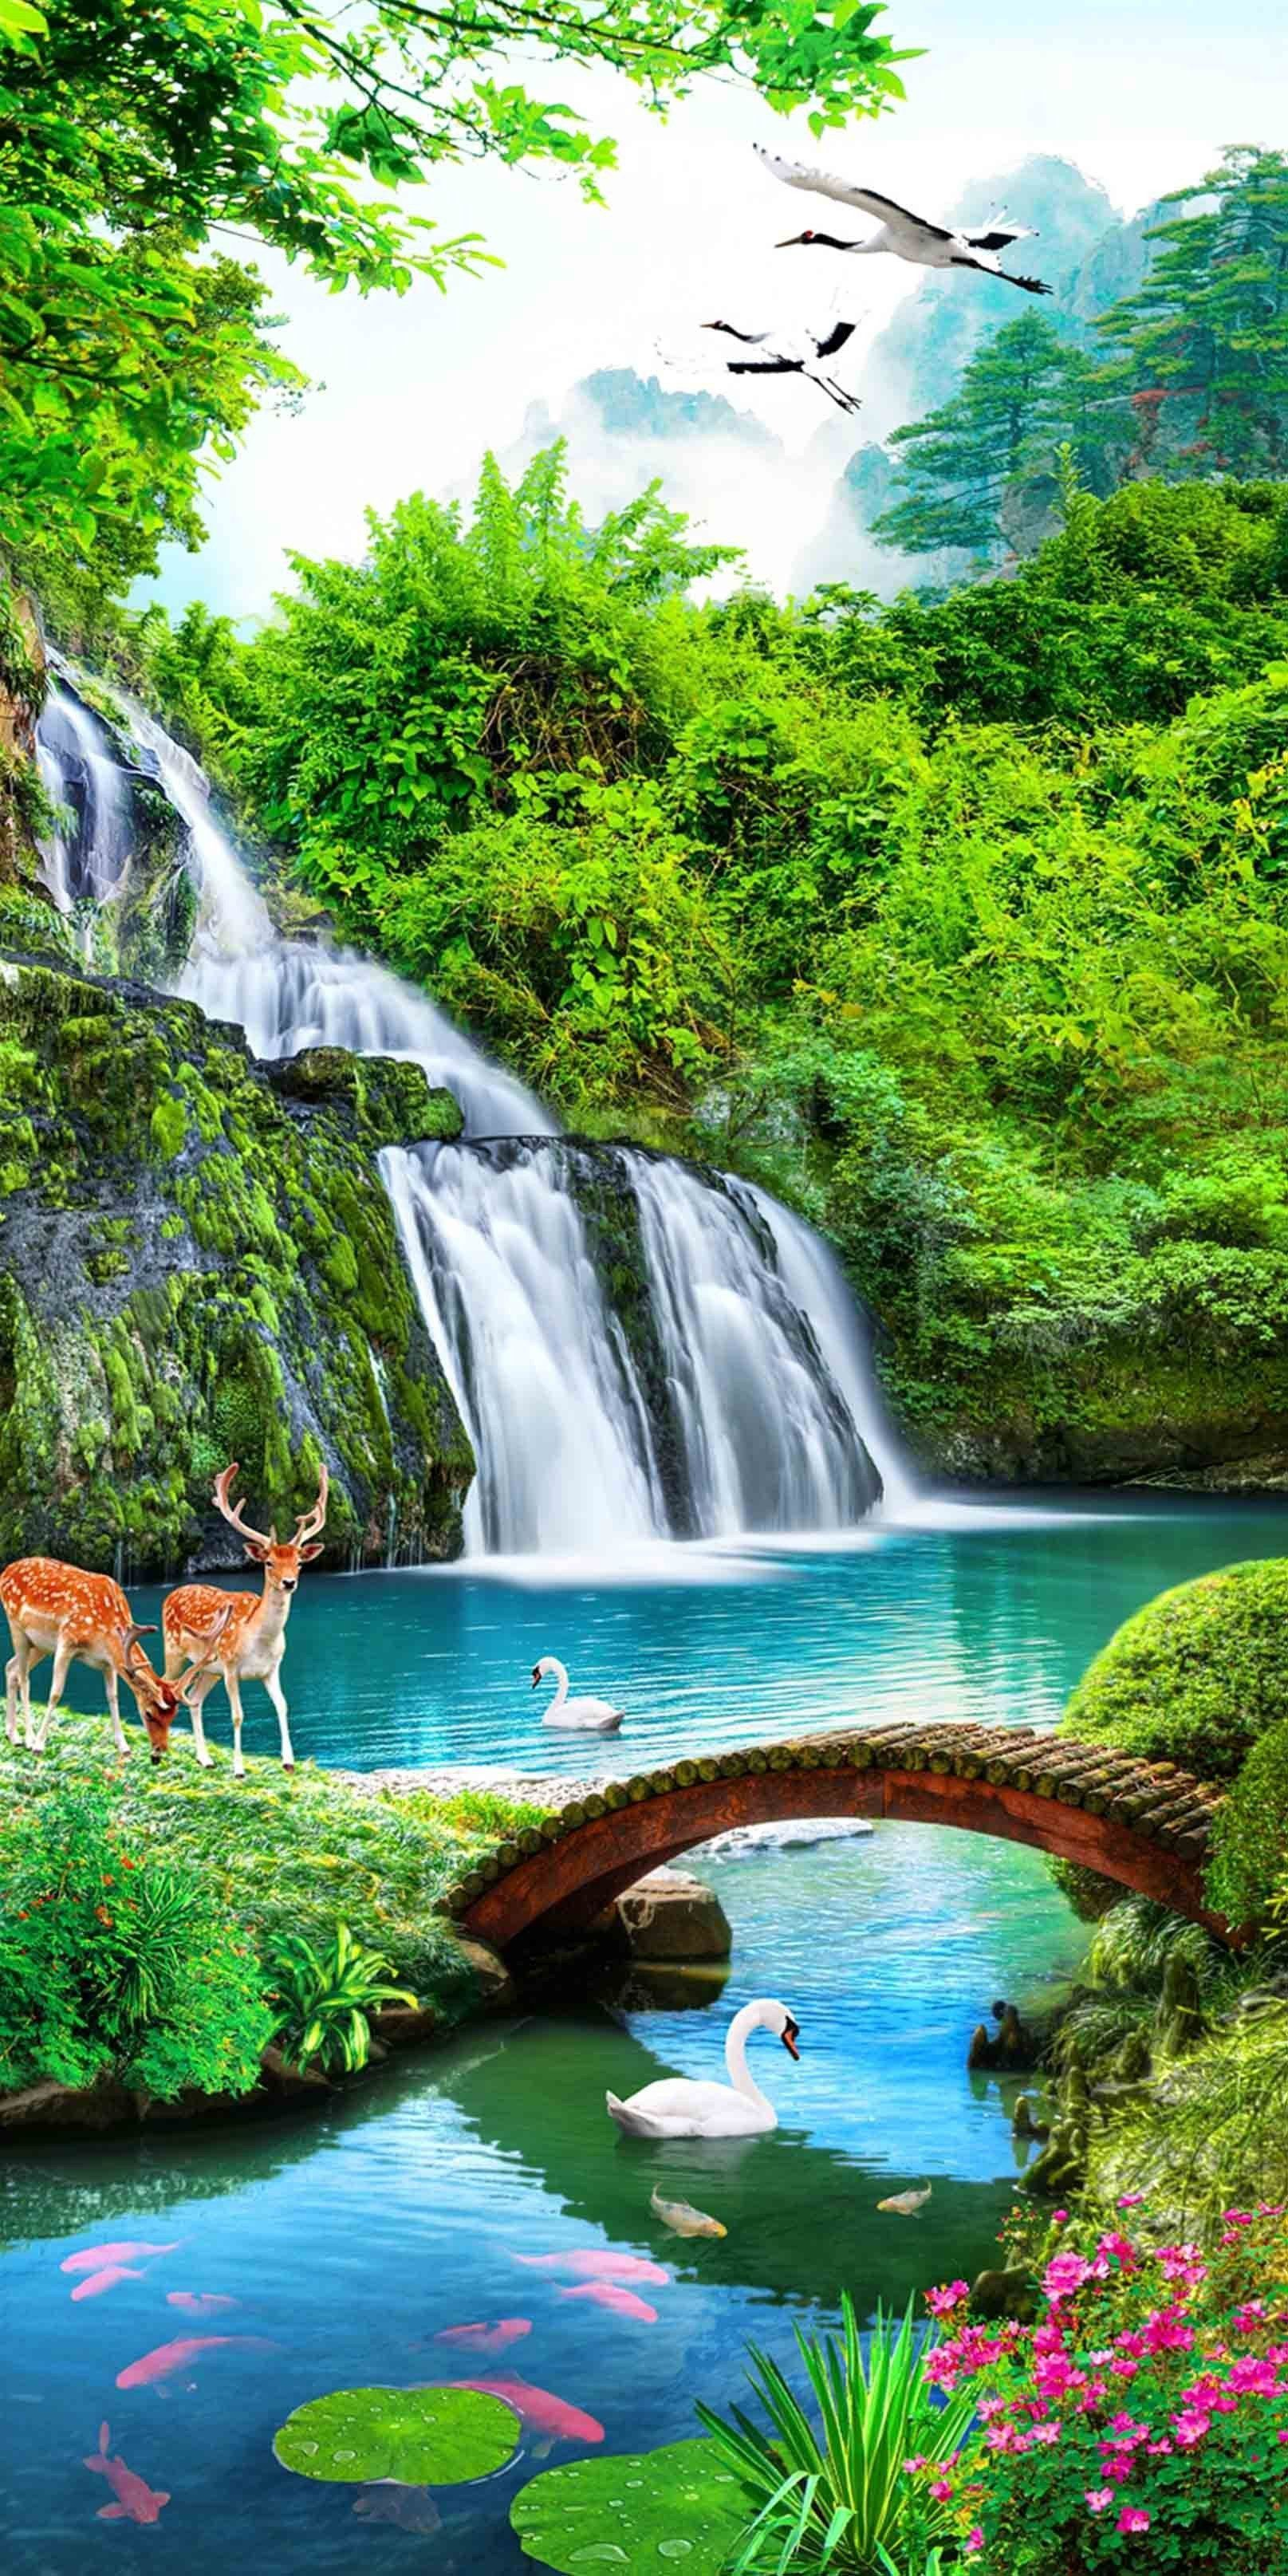 3d Waterfall Animals 1327 Stair Risersdu Simpan Di 2020 Pemandangan Air Terjun Fotografi Alam